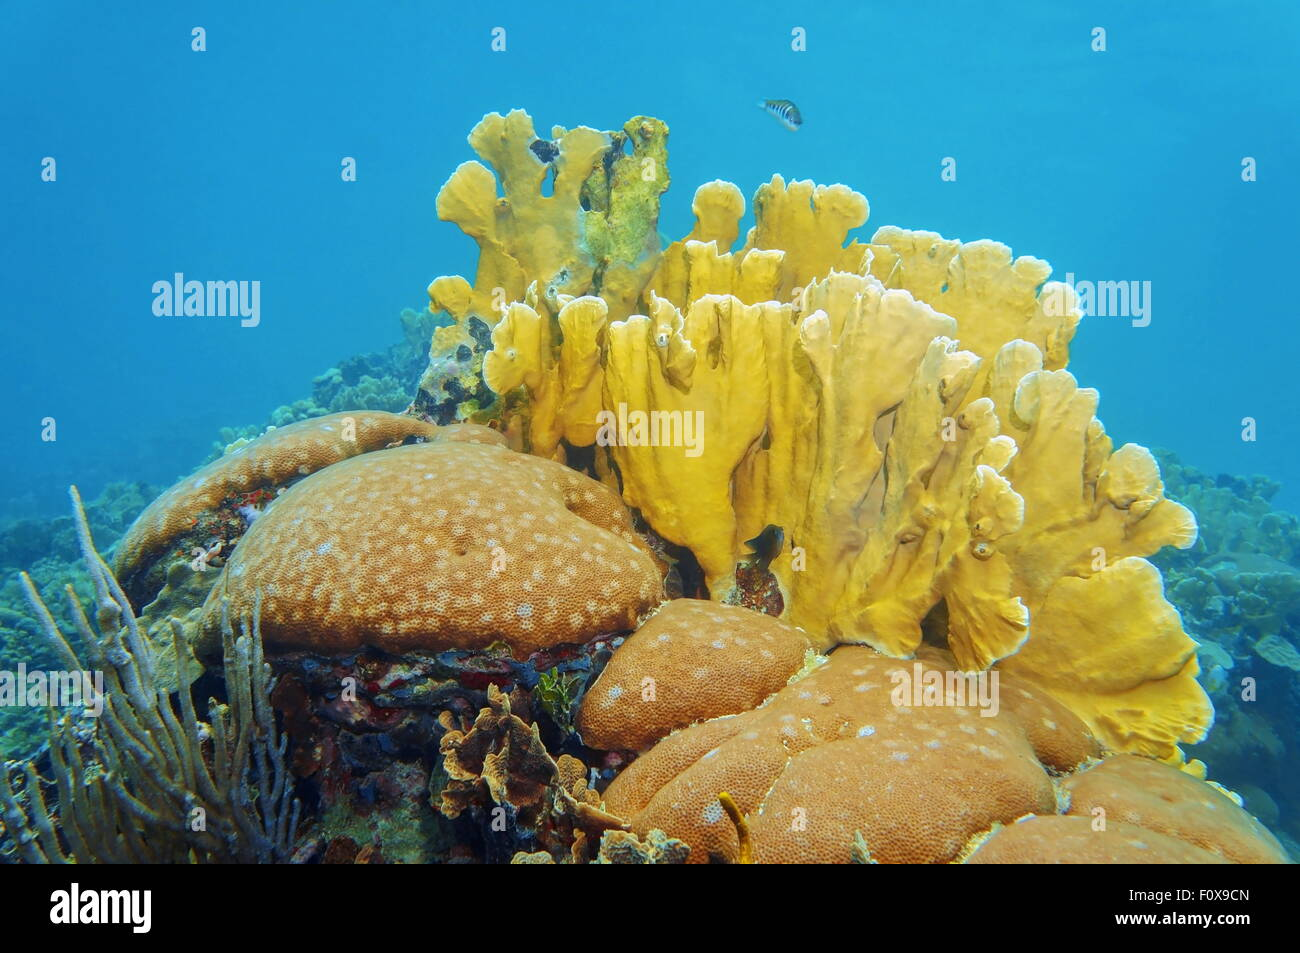 Coral reef underwater with massive starlet and bladed fire corals, Caribbean sea - Stock Image